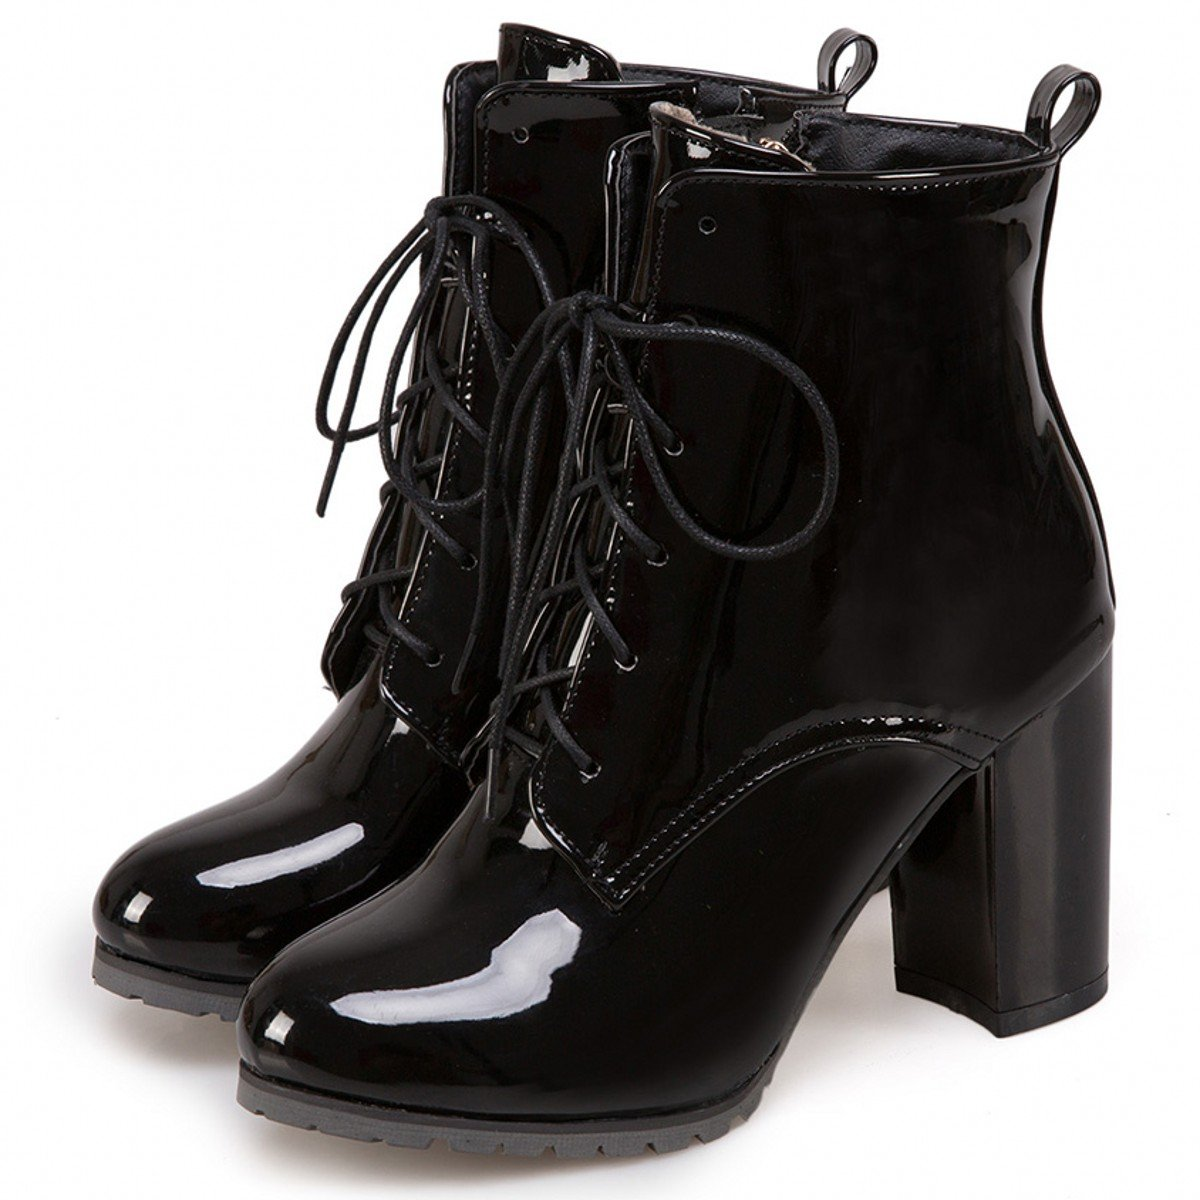 c1d88a711f79f Rongzhi Womens Ankle Boots Chunky Thick Heels Shiny Patent Leather Lace Up  Booties